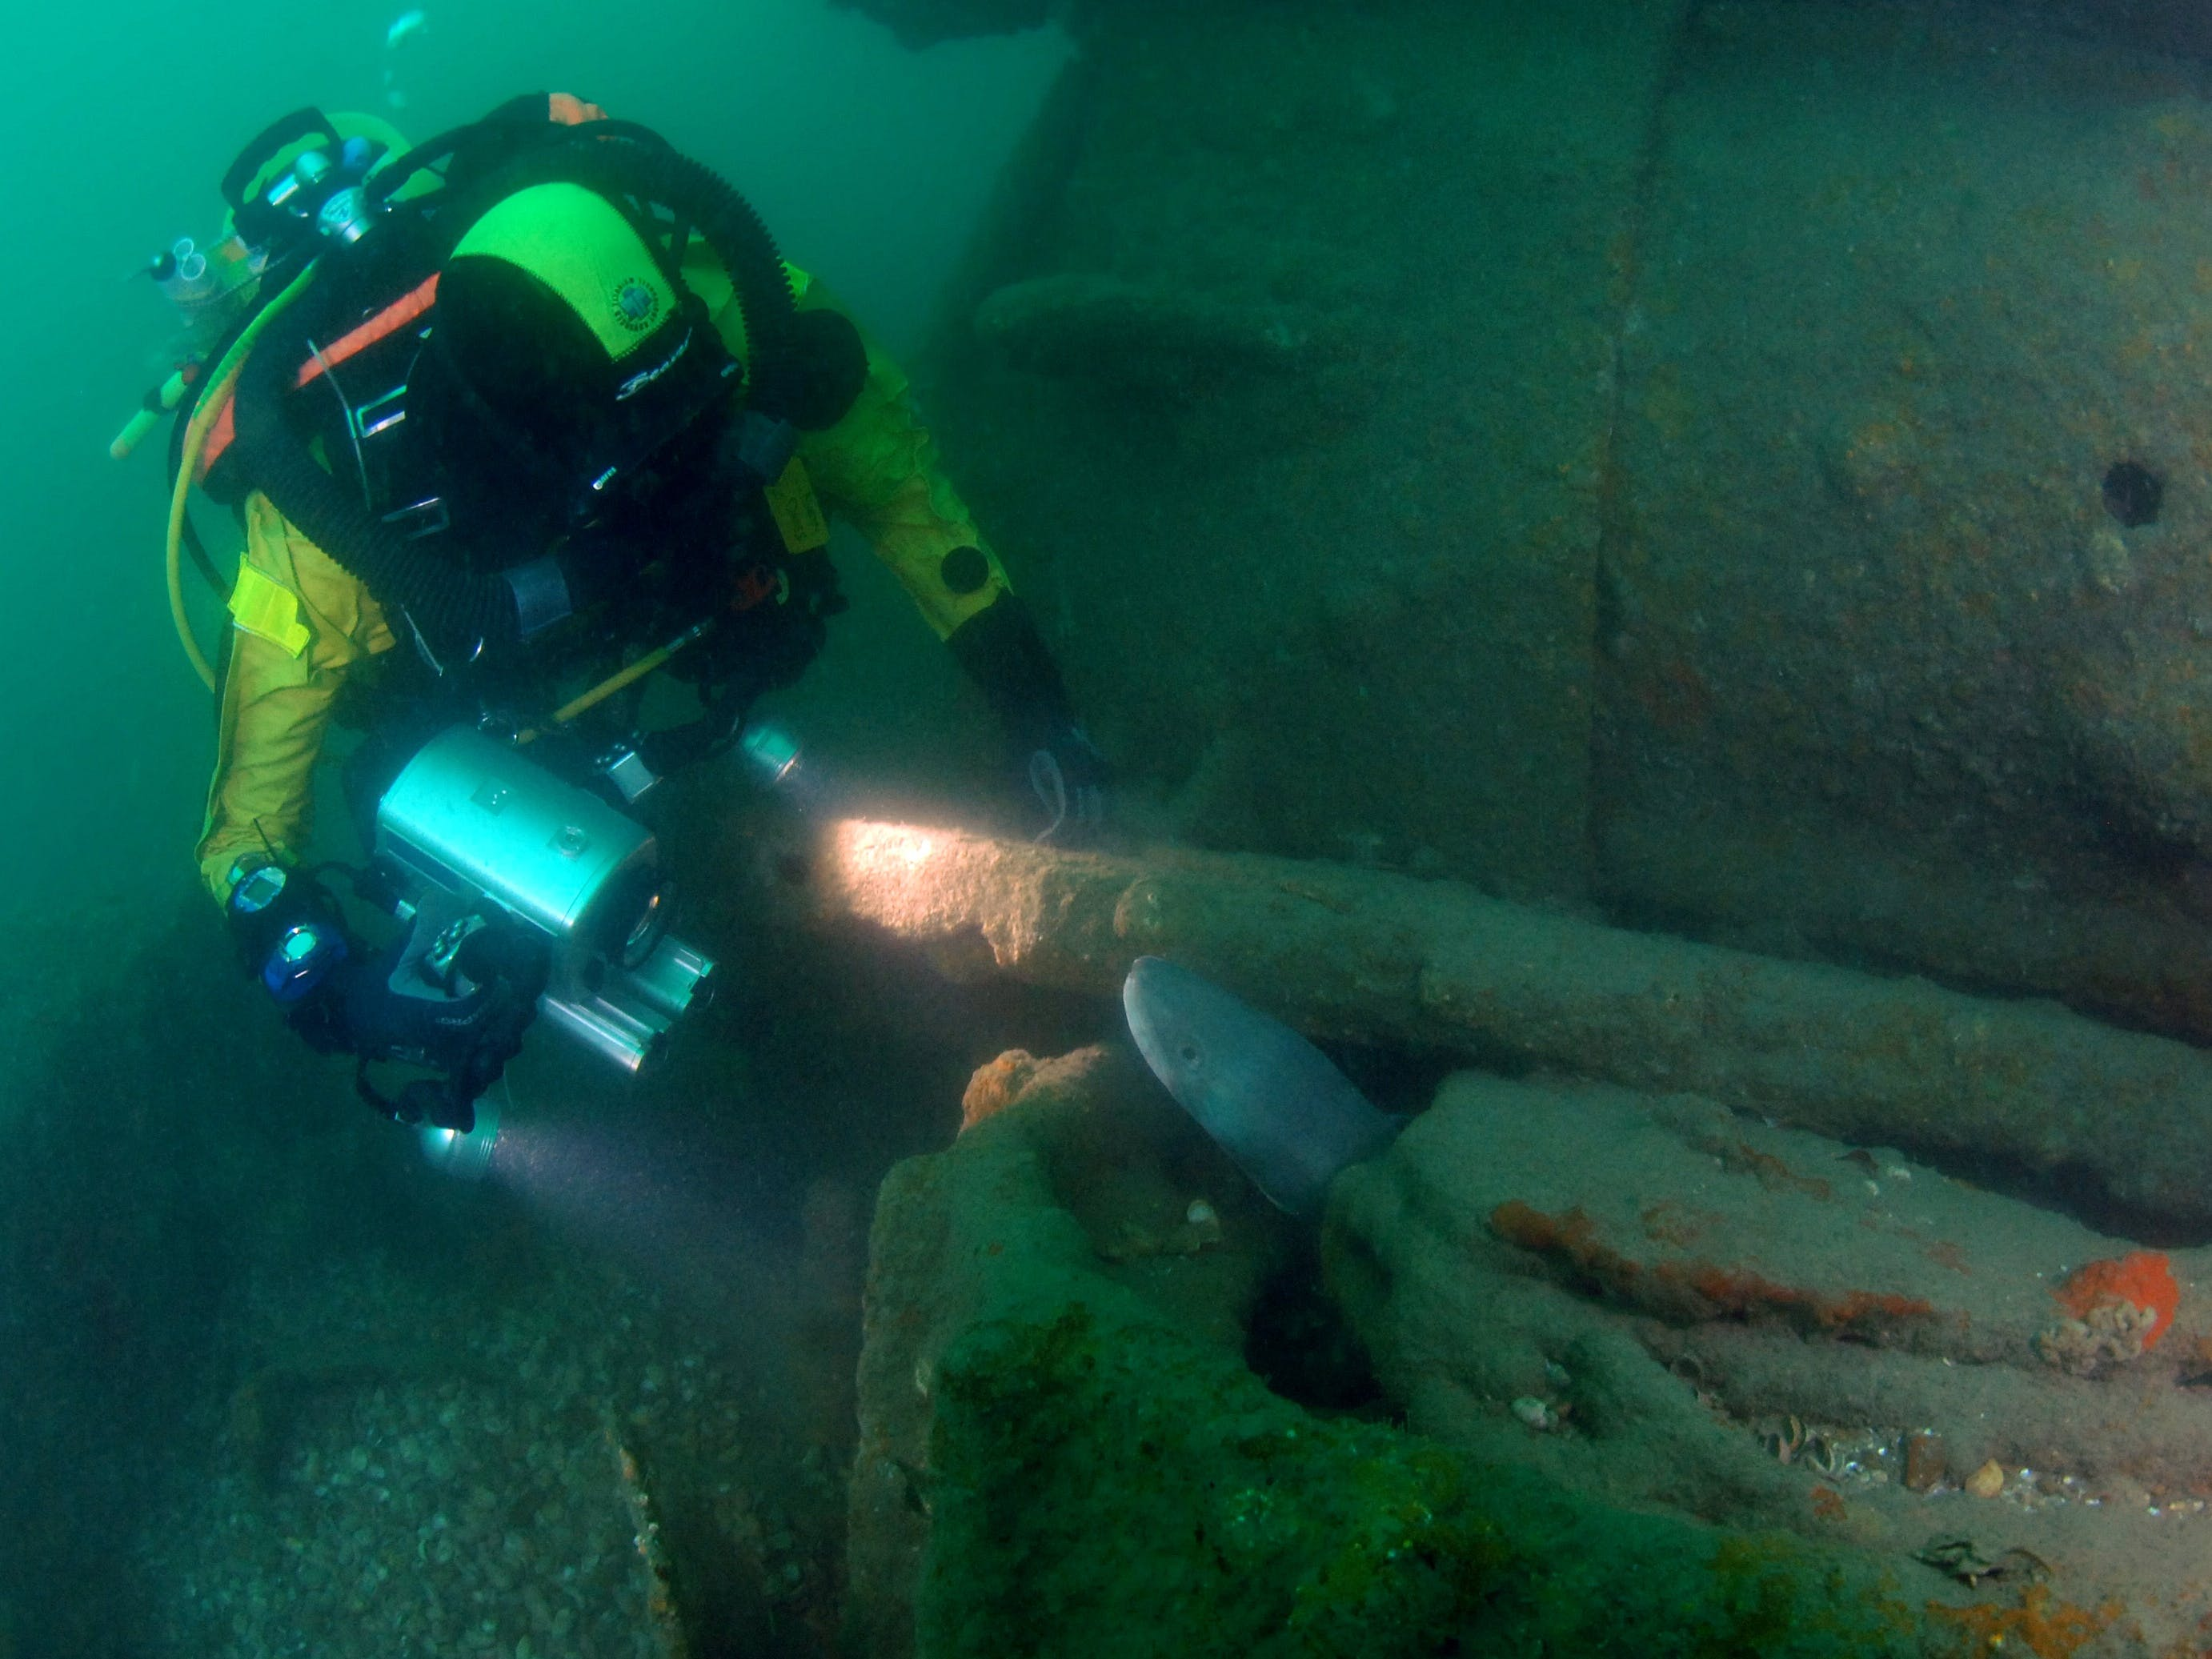 Image of a diver and the wreck of a tank, courtesy Martin Davies Day